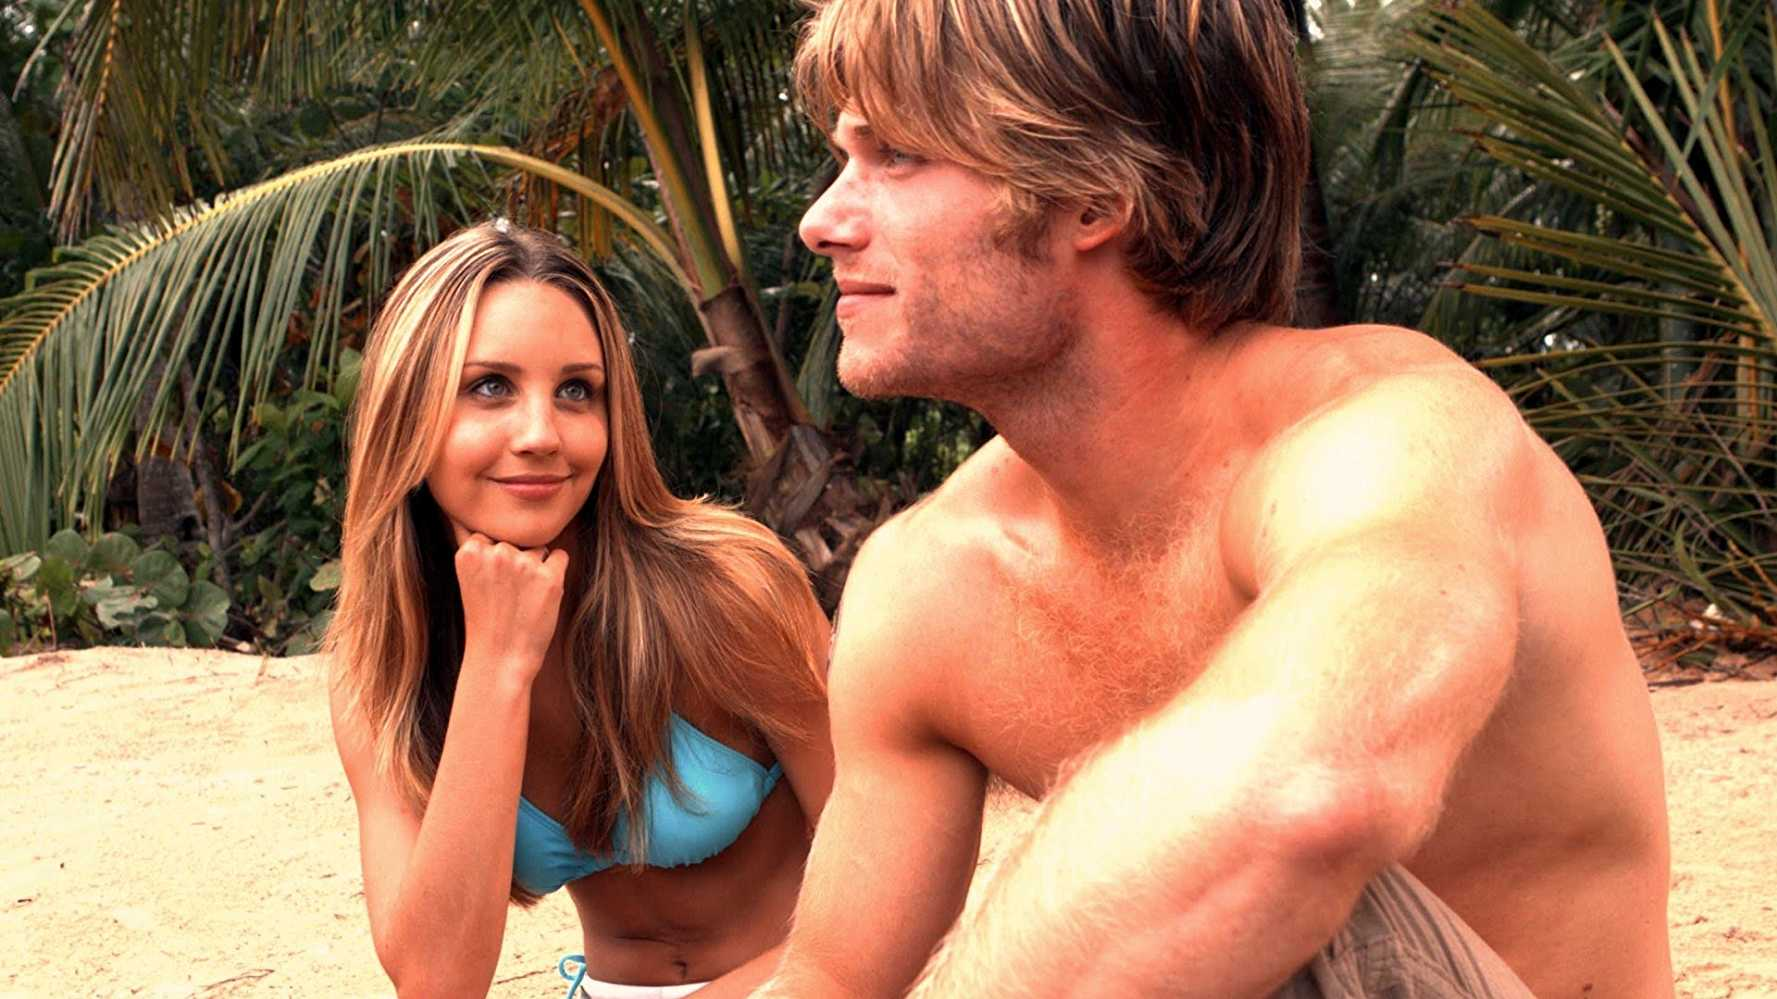 Carmack also starred in 'Lovewrecked' alongside the 'What a Girl Wants' star Amanda Bynes. (IMDb)